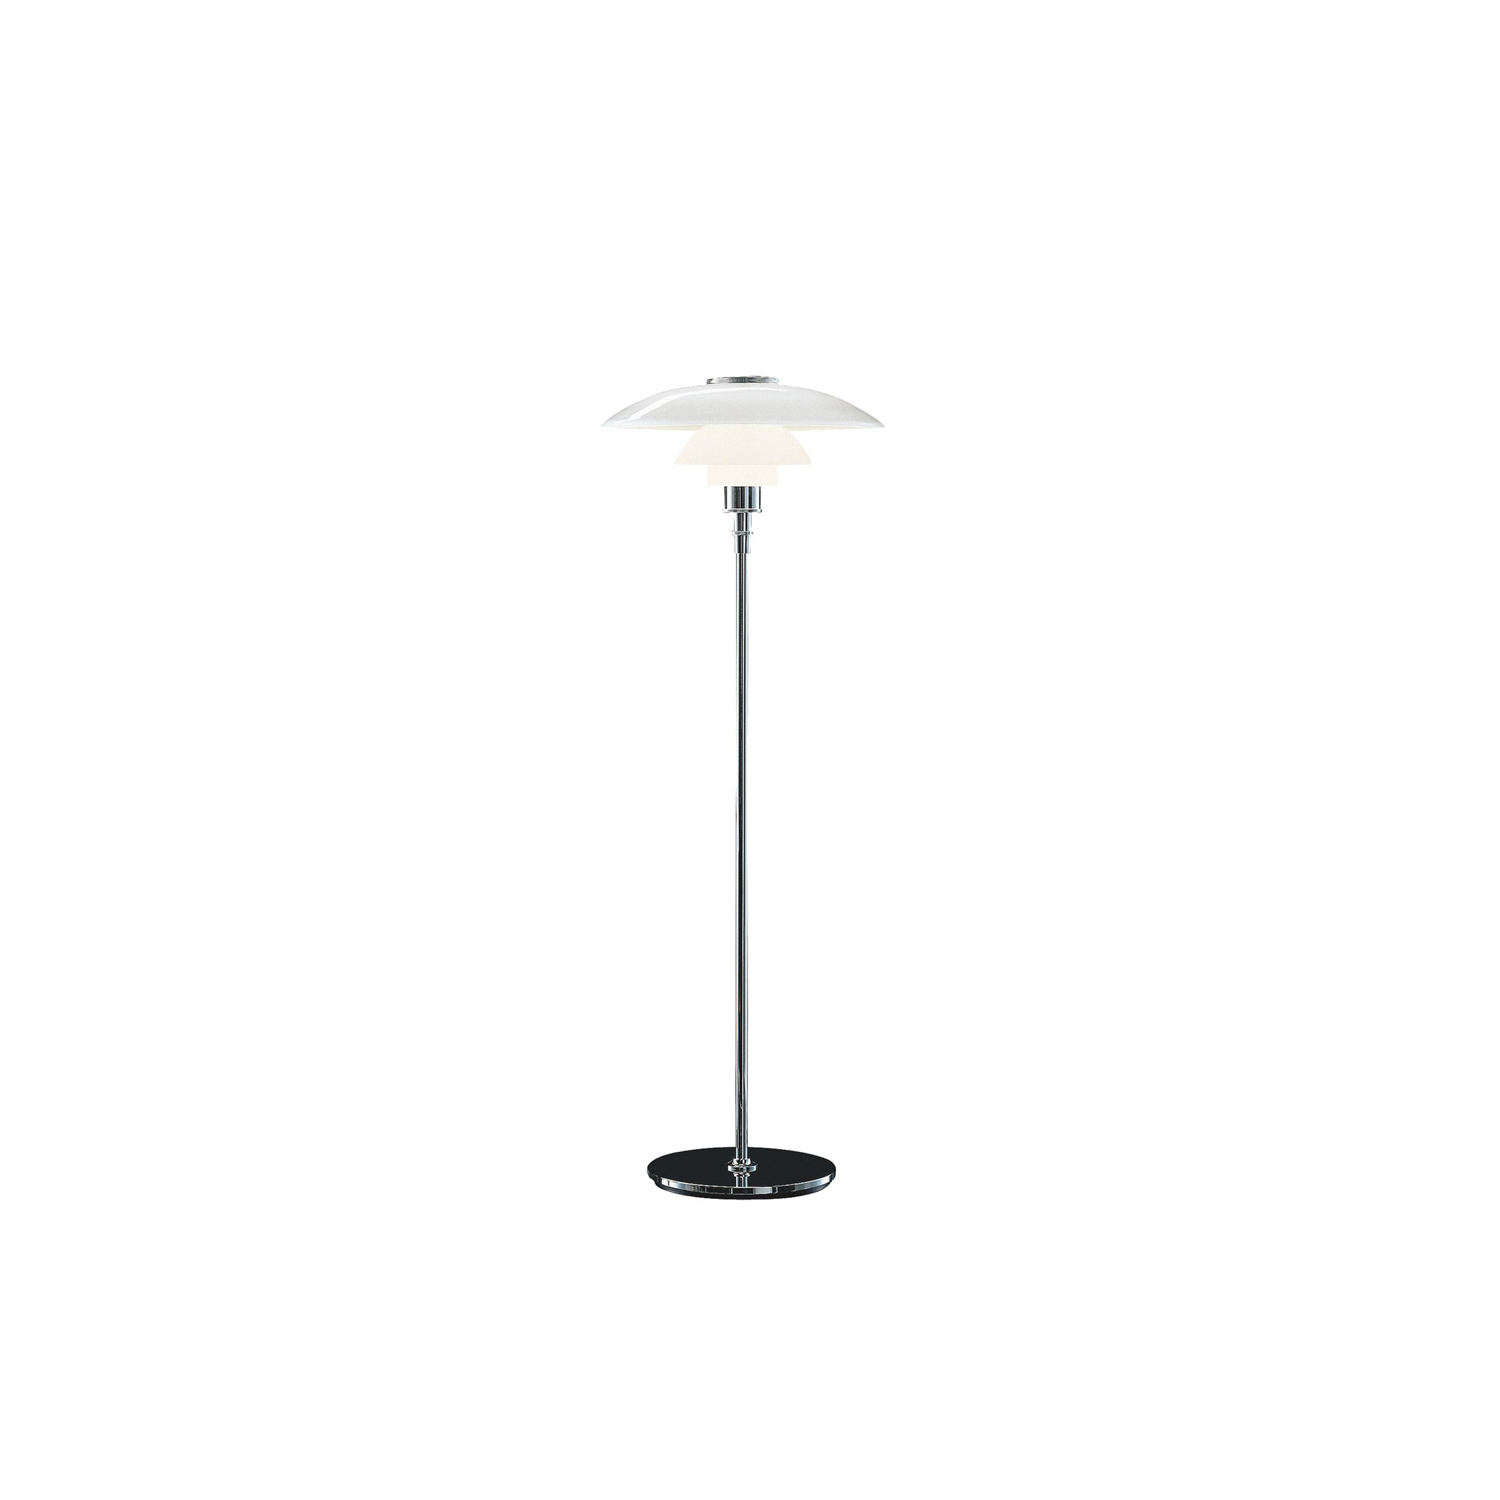 PH 4½-3½ Floor Light - The fixture is designed based on the principle of a reflective three-shade system, which directs the majority of the light downwards. The shades are made of mouth-blown opal three-layer glass, which is glossy on top and sandblasted matt on the underside, giving a soft and diffuse light distribution. | Matter of Stuff